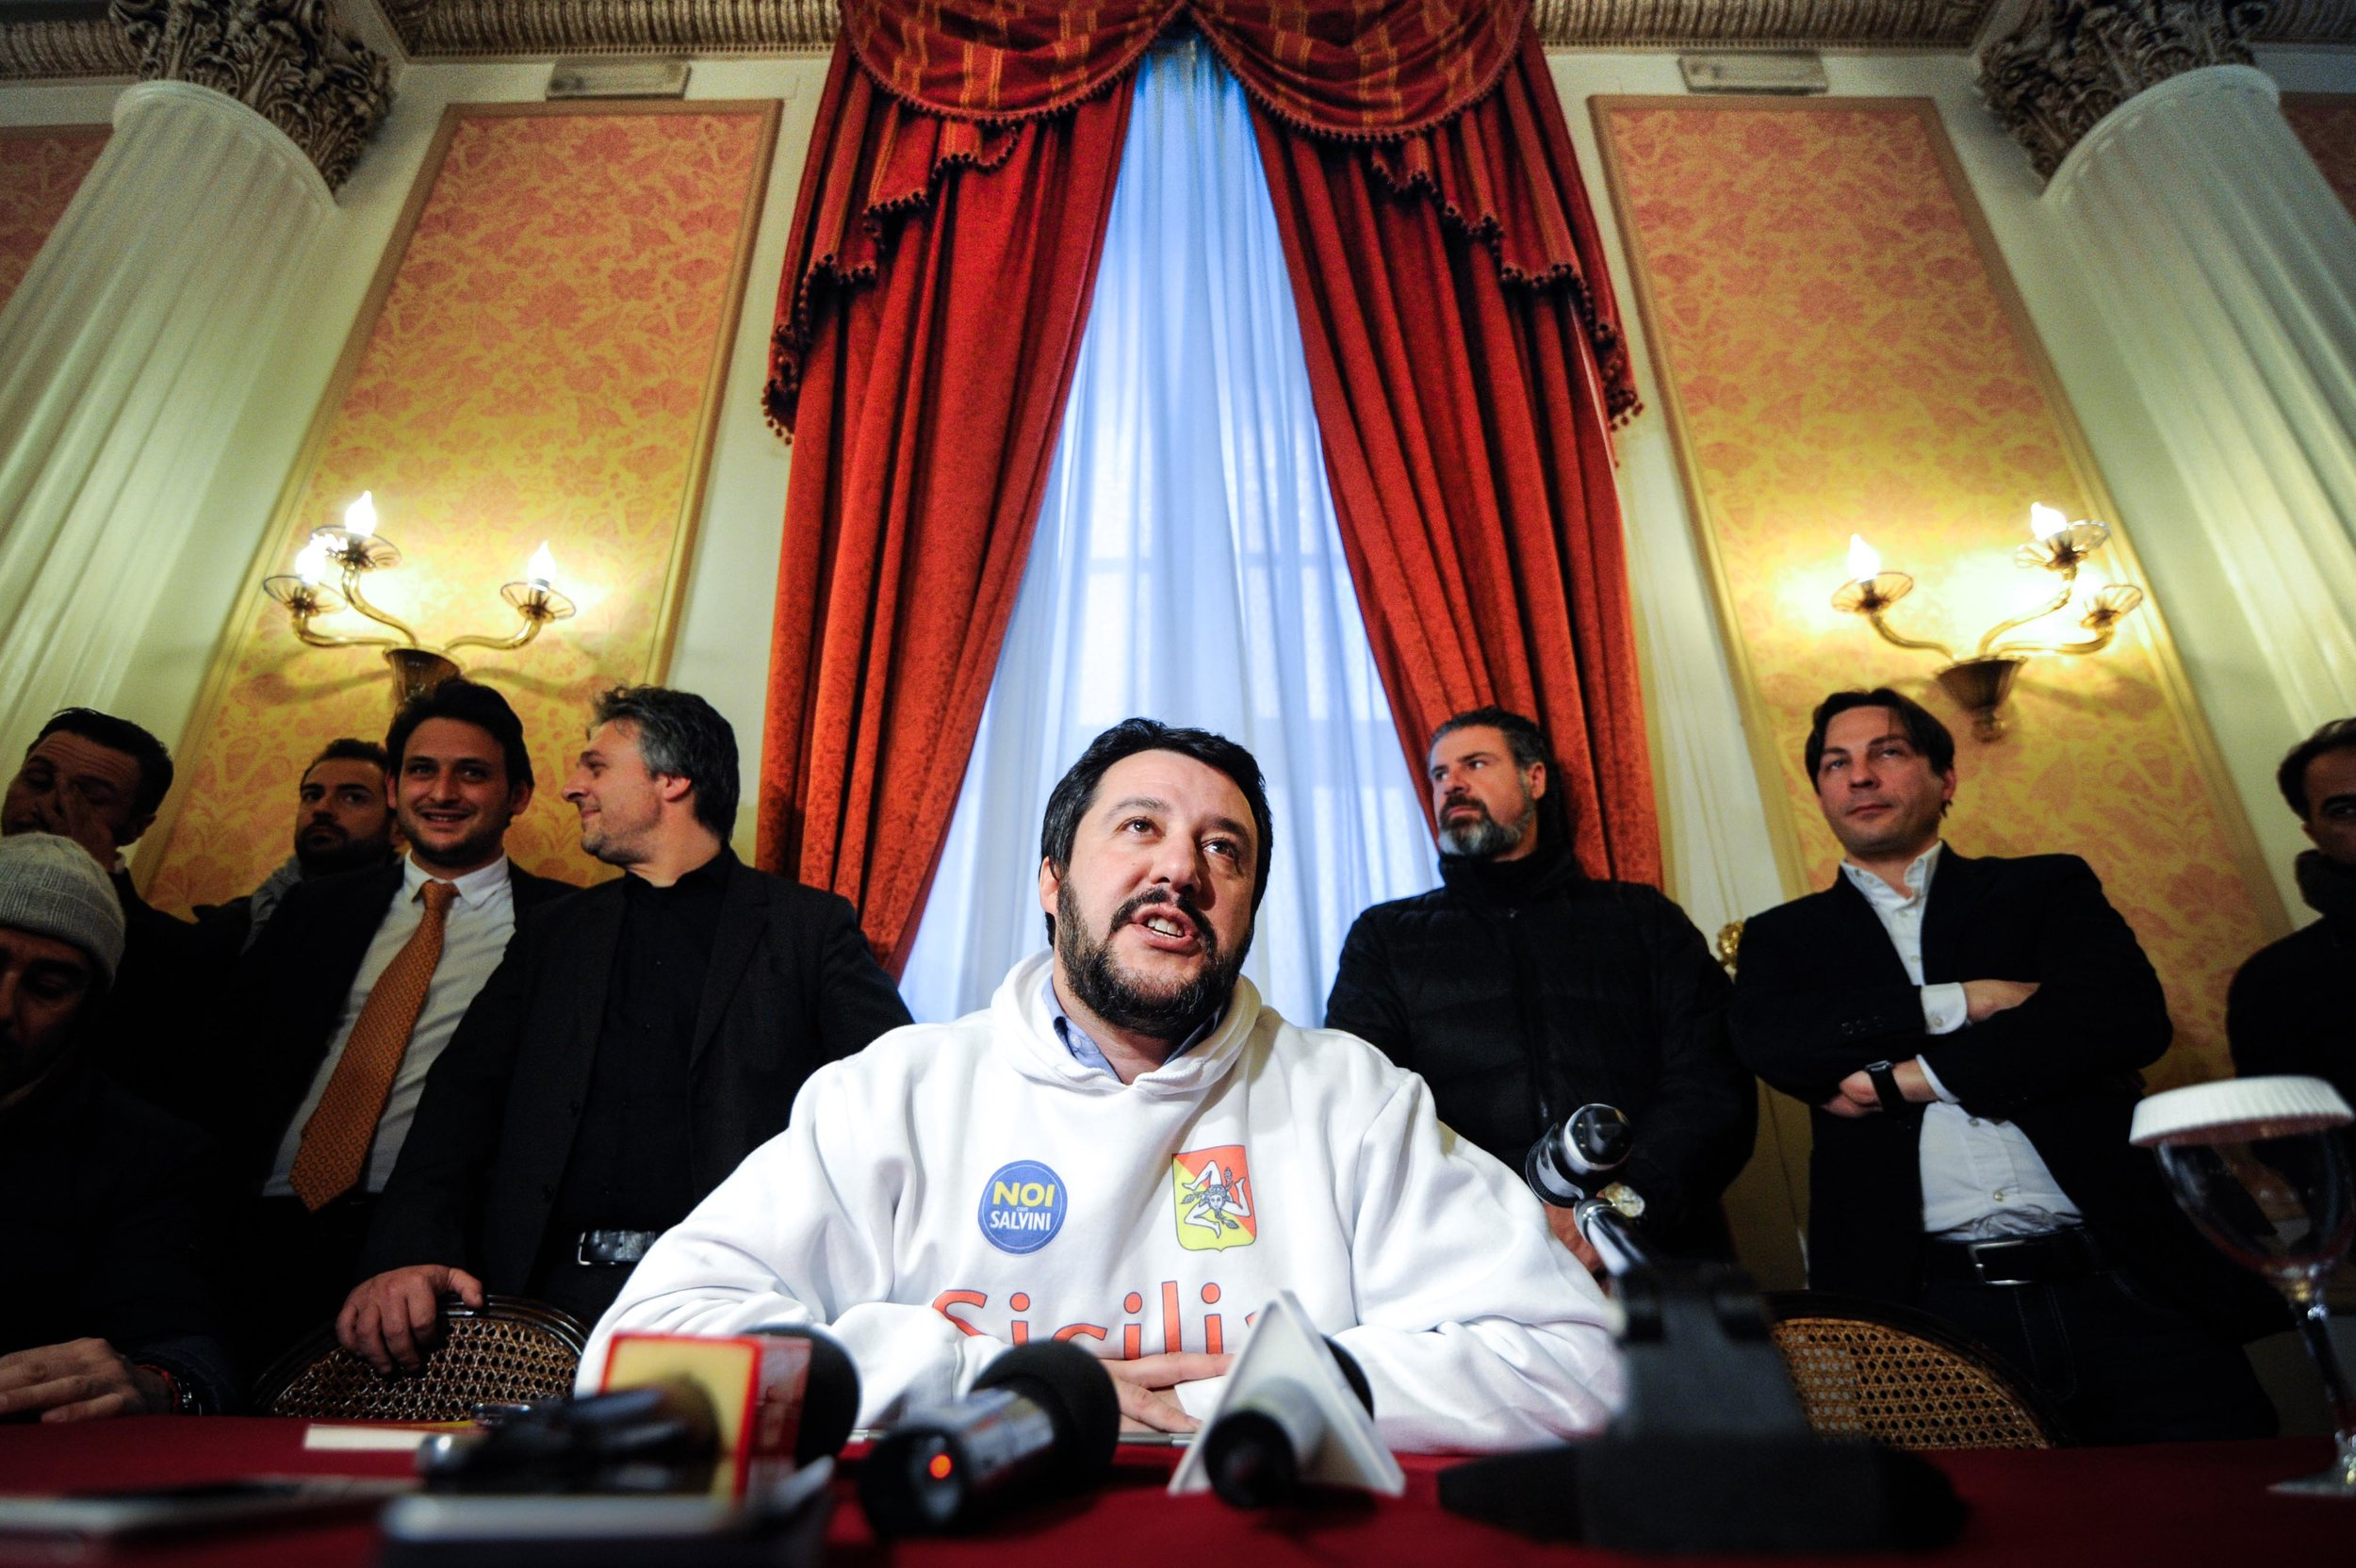 Northern League's leader Matteo Salvini speaks during a press conference in Palermo, Italy, February 8, 2015.